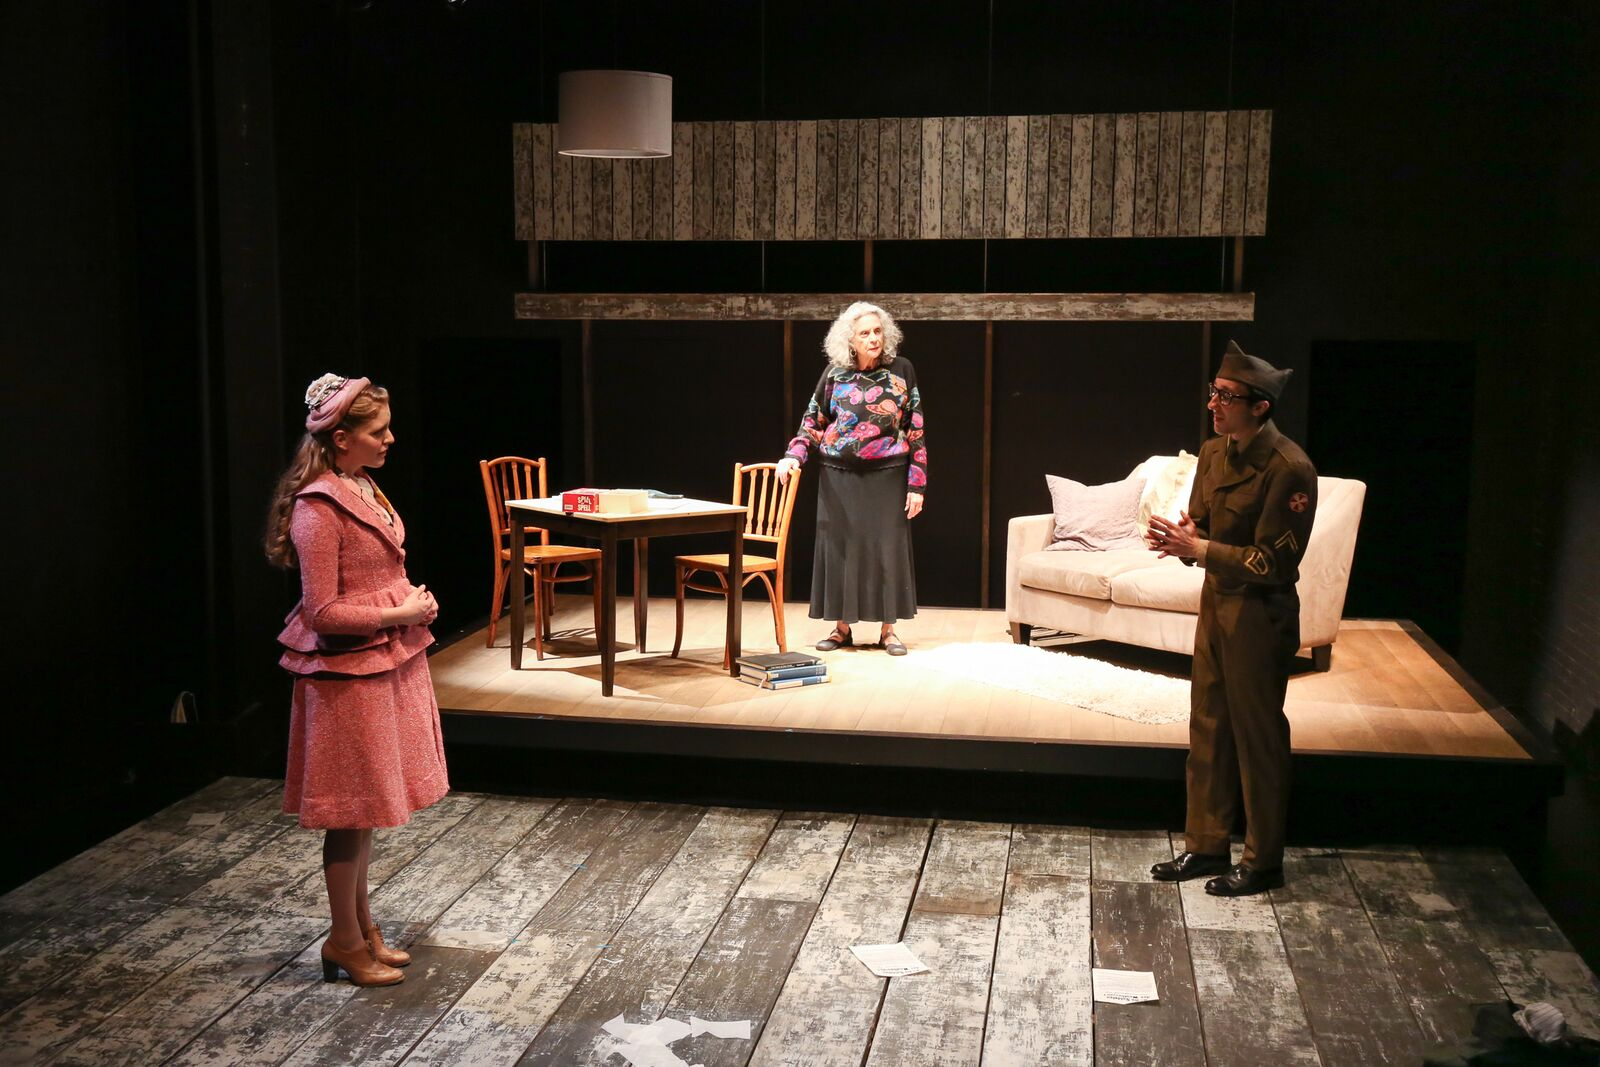 Letters to Sala , by Arlene Hutton at The Barrow Group. Featuring Britain Seibert & Anita Keal.